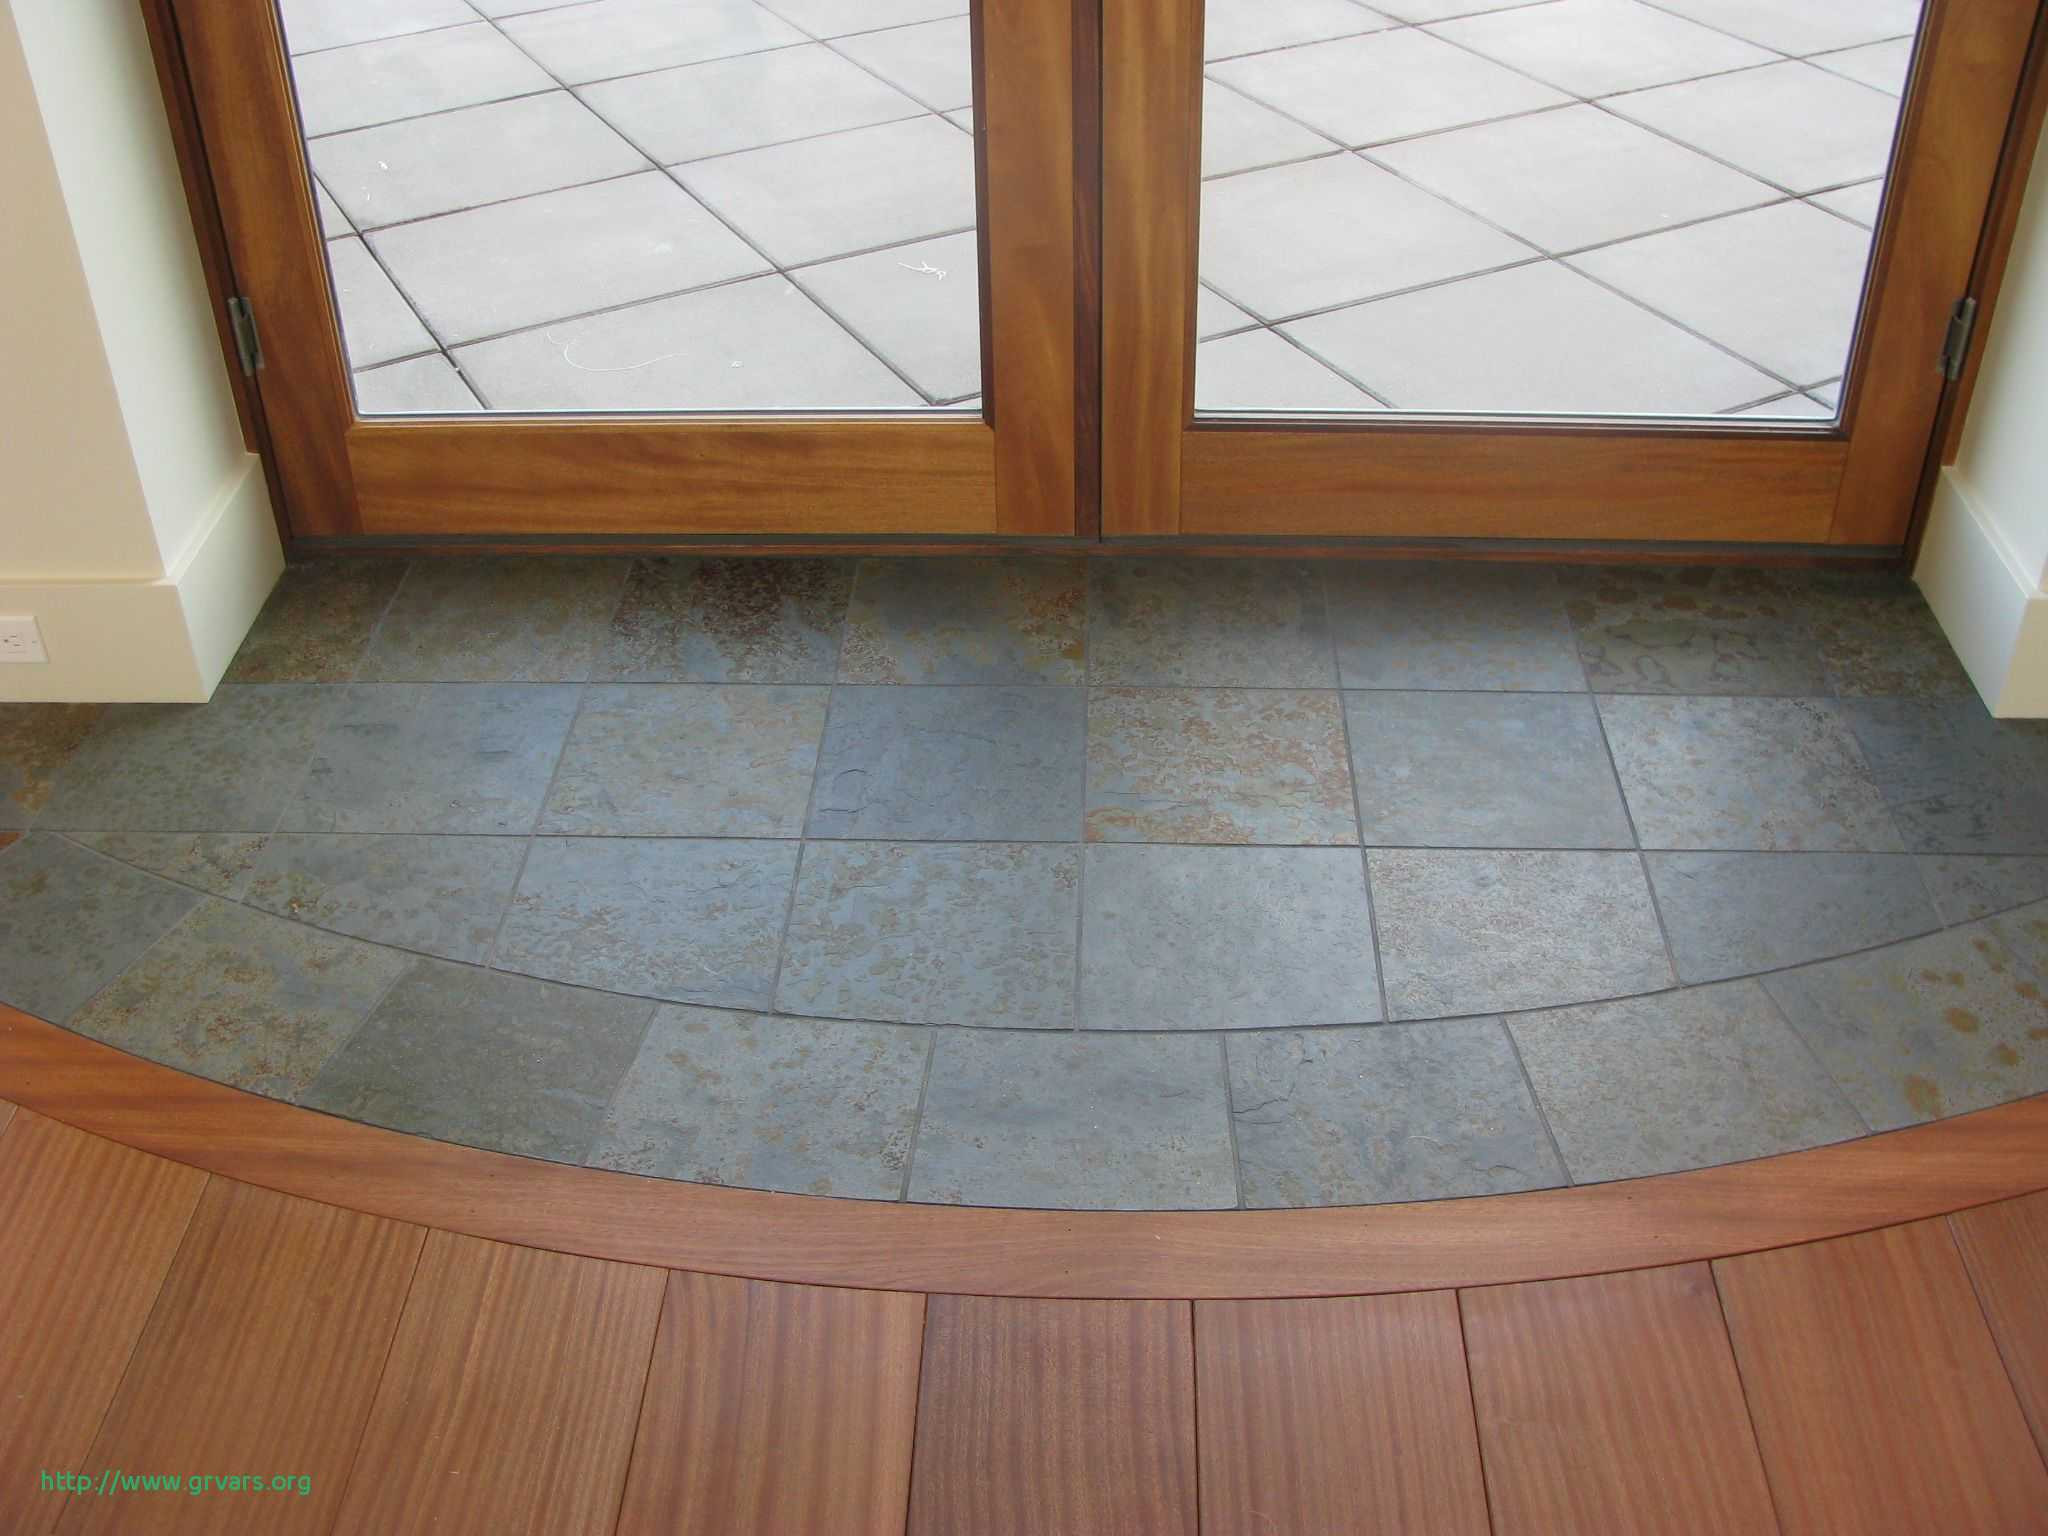 hardwood floor refinishing delaware of 25 charmant does hardwood floors increase home value ideas blog inside does hardwood floors increase home value meilleur de slate entryway to protect hardwood floors at french